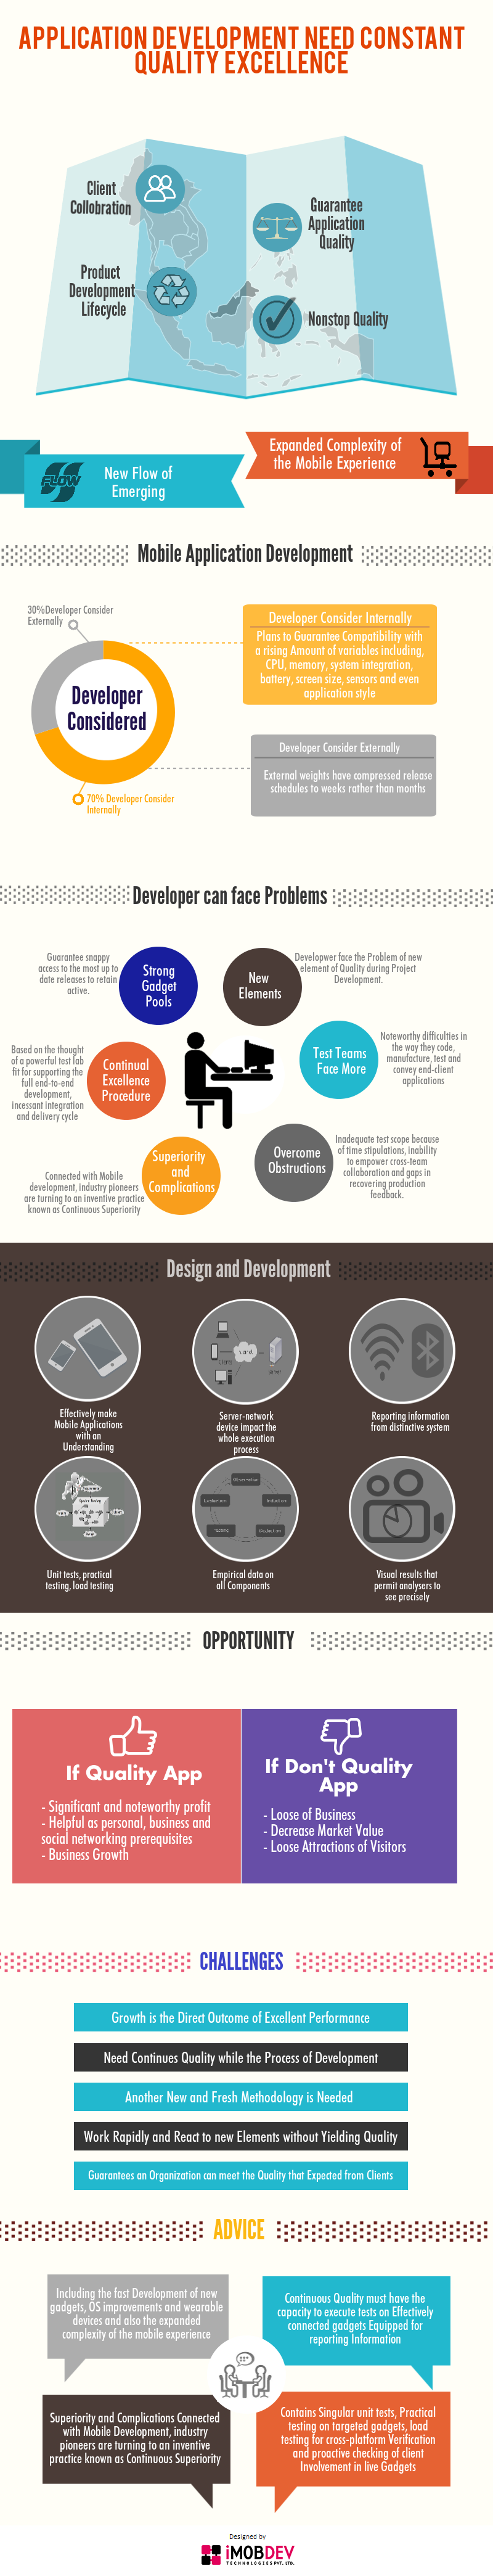 Why Any Application Development Need Constant Quality Excellence? - Image 1